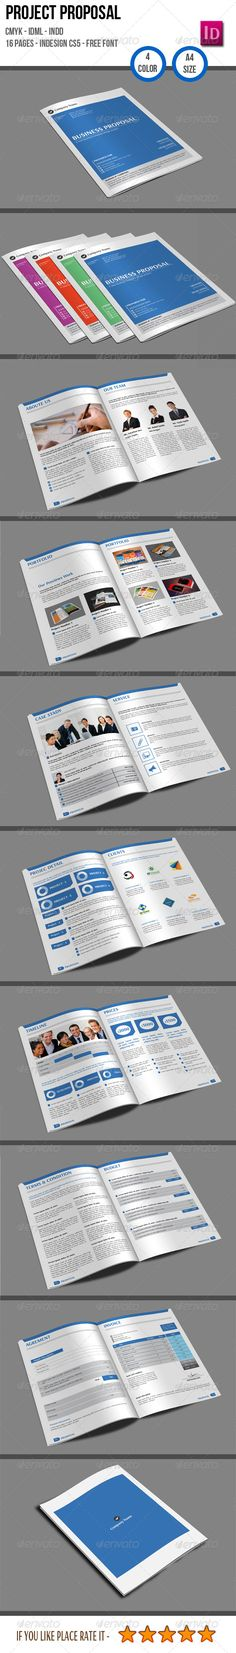 Business Project Proposal Template InDesign INDD #design Download - design proposal